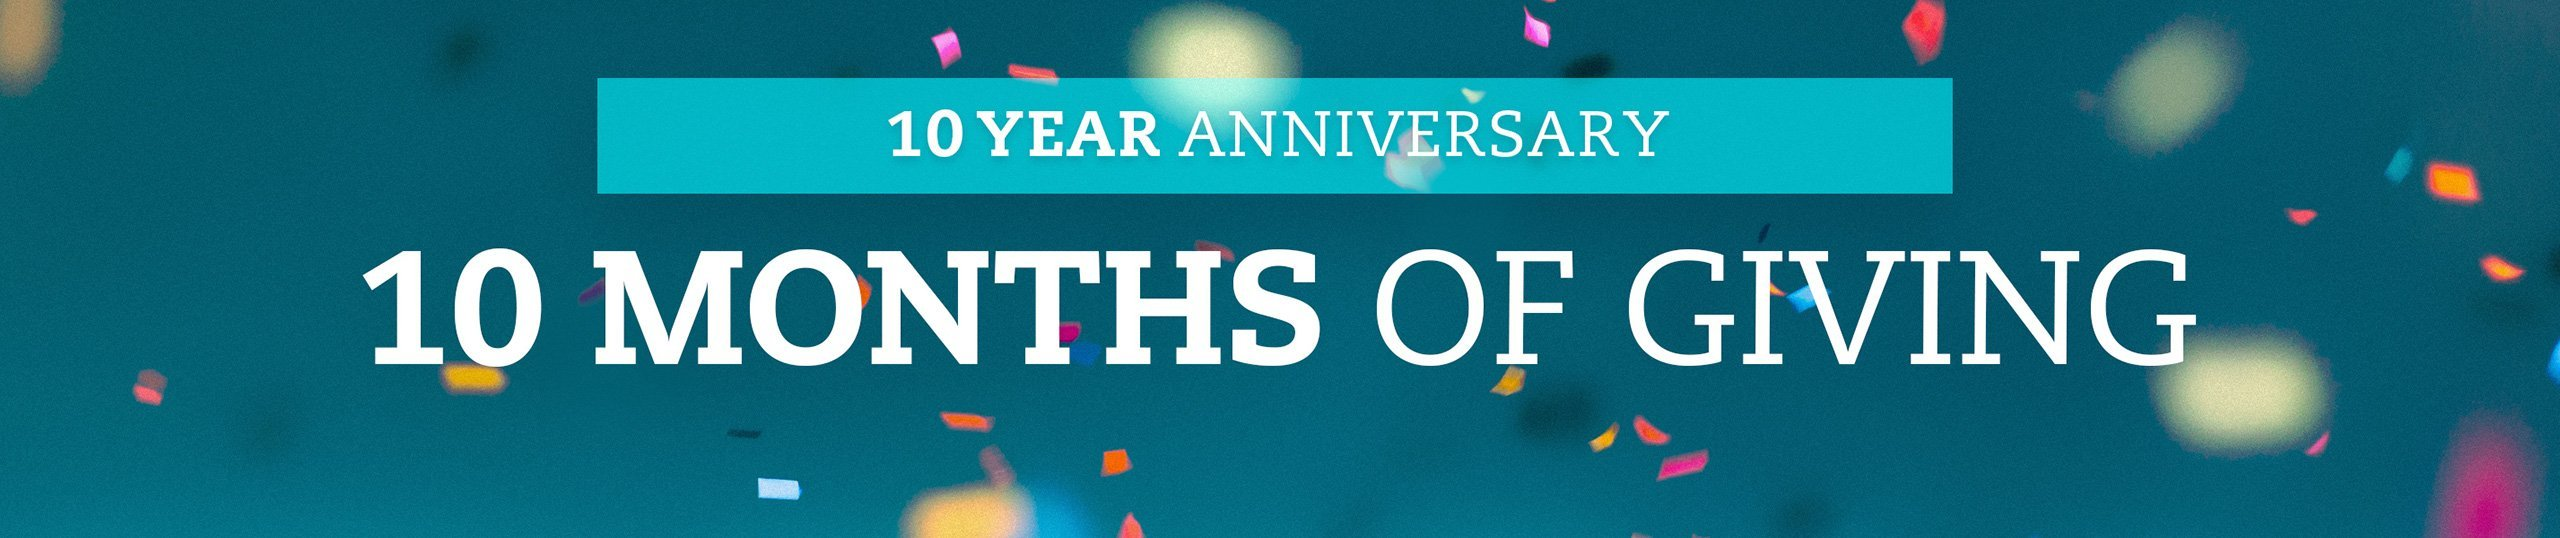 Tenth Anniversary Ten Months of Giving Banner Image